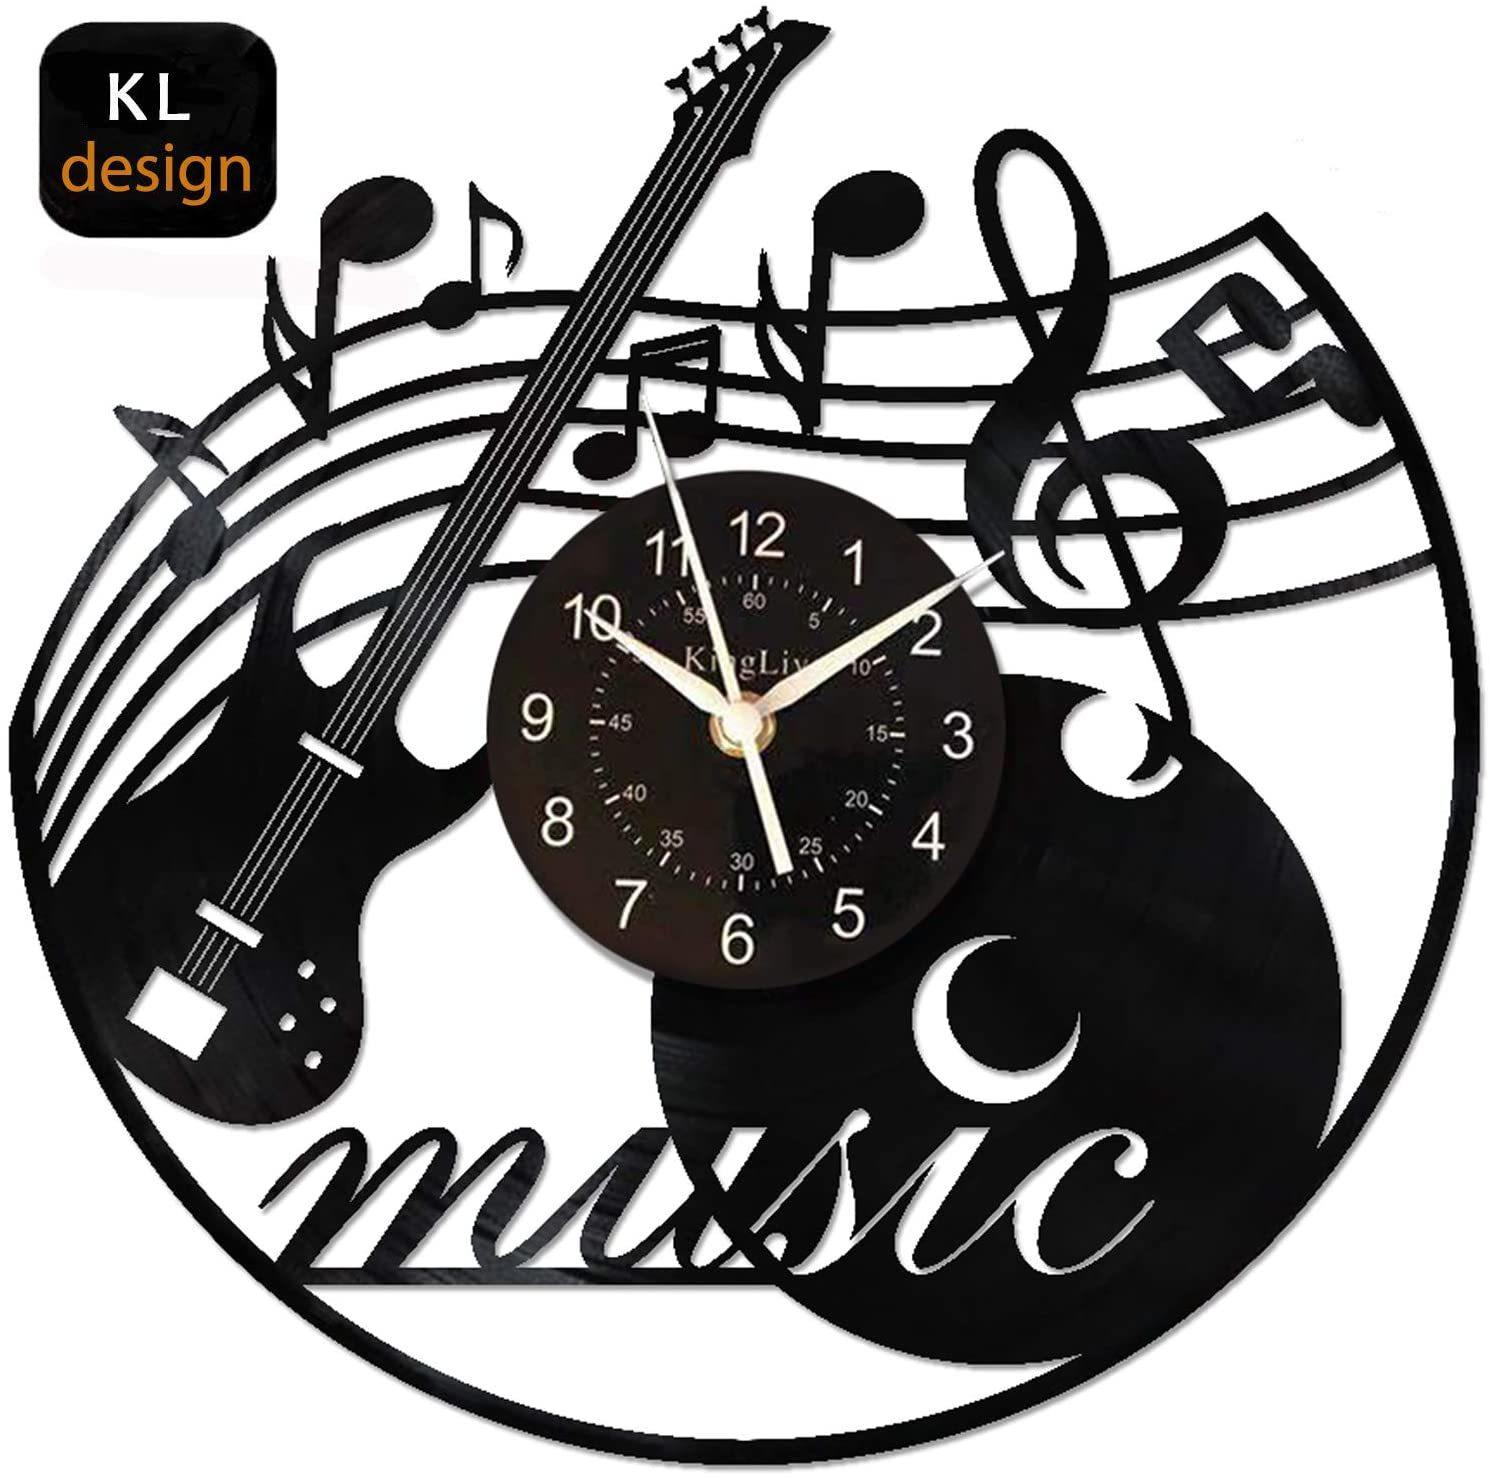 Vinyl Record Wall Clock Music Get Unique Bedroom Or Kitchen Wall Home Decor Gift Ideas For Music Lover Diy Vintage Led Choose Wall Clock Blue Wall Clock Buy From Nickyoung09 33 01 Dhgate Com